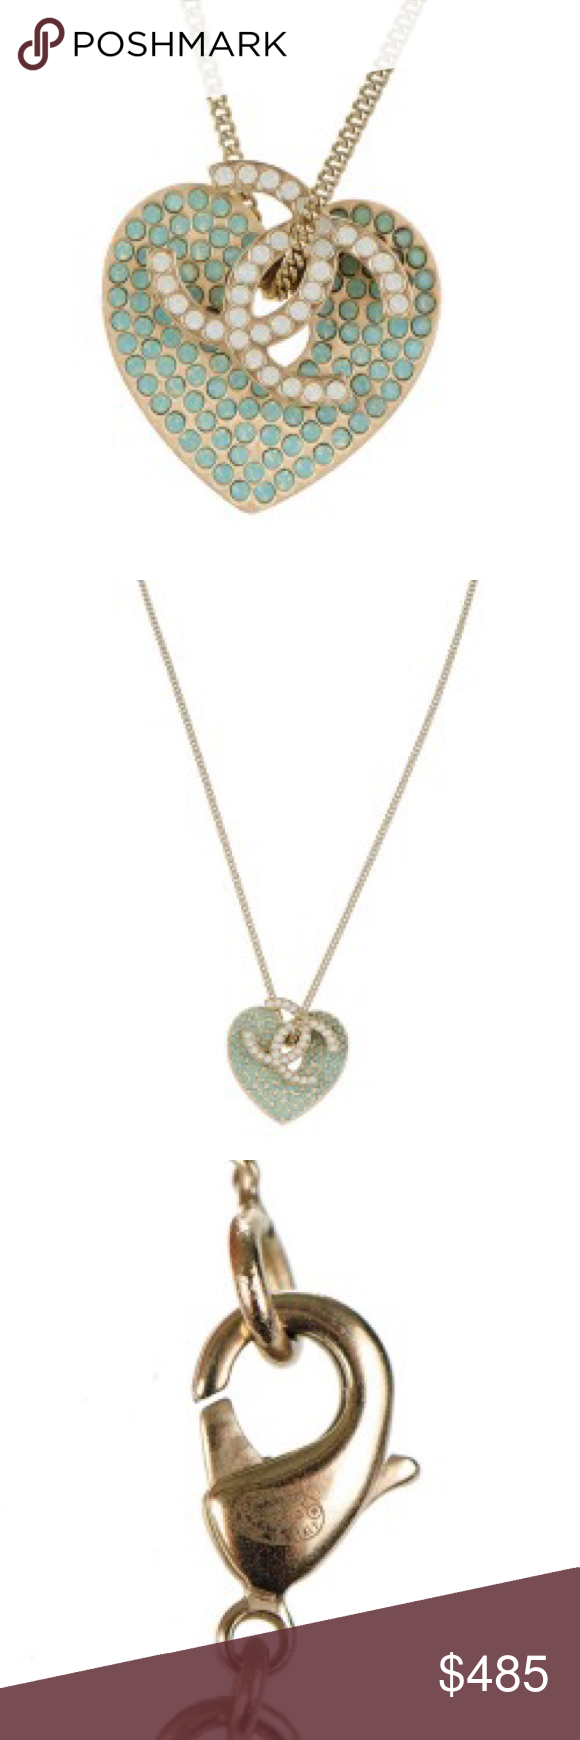 Chanel crystal heart cc charm necklace gold chanel jewelry and